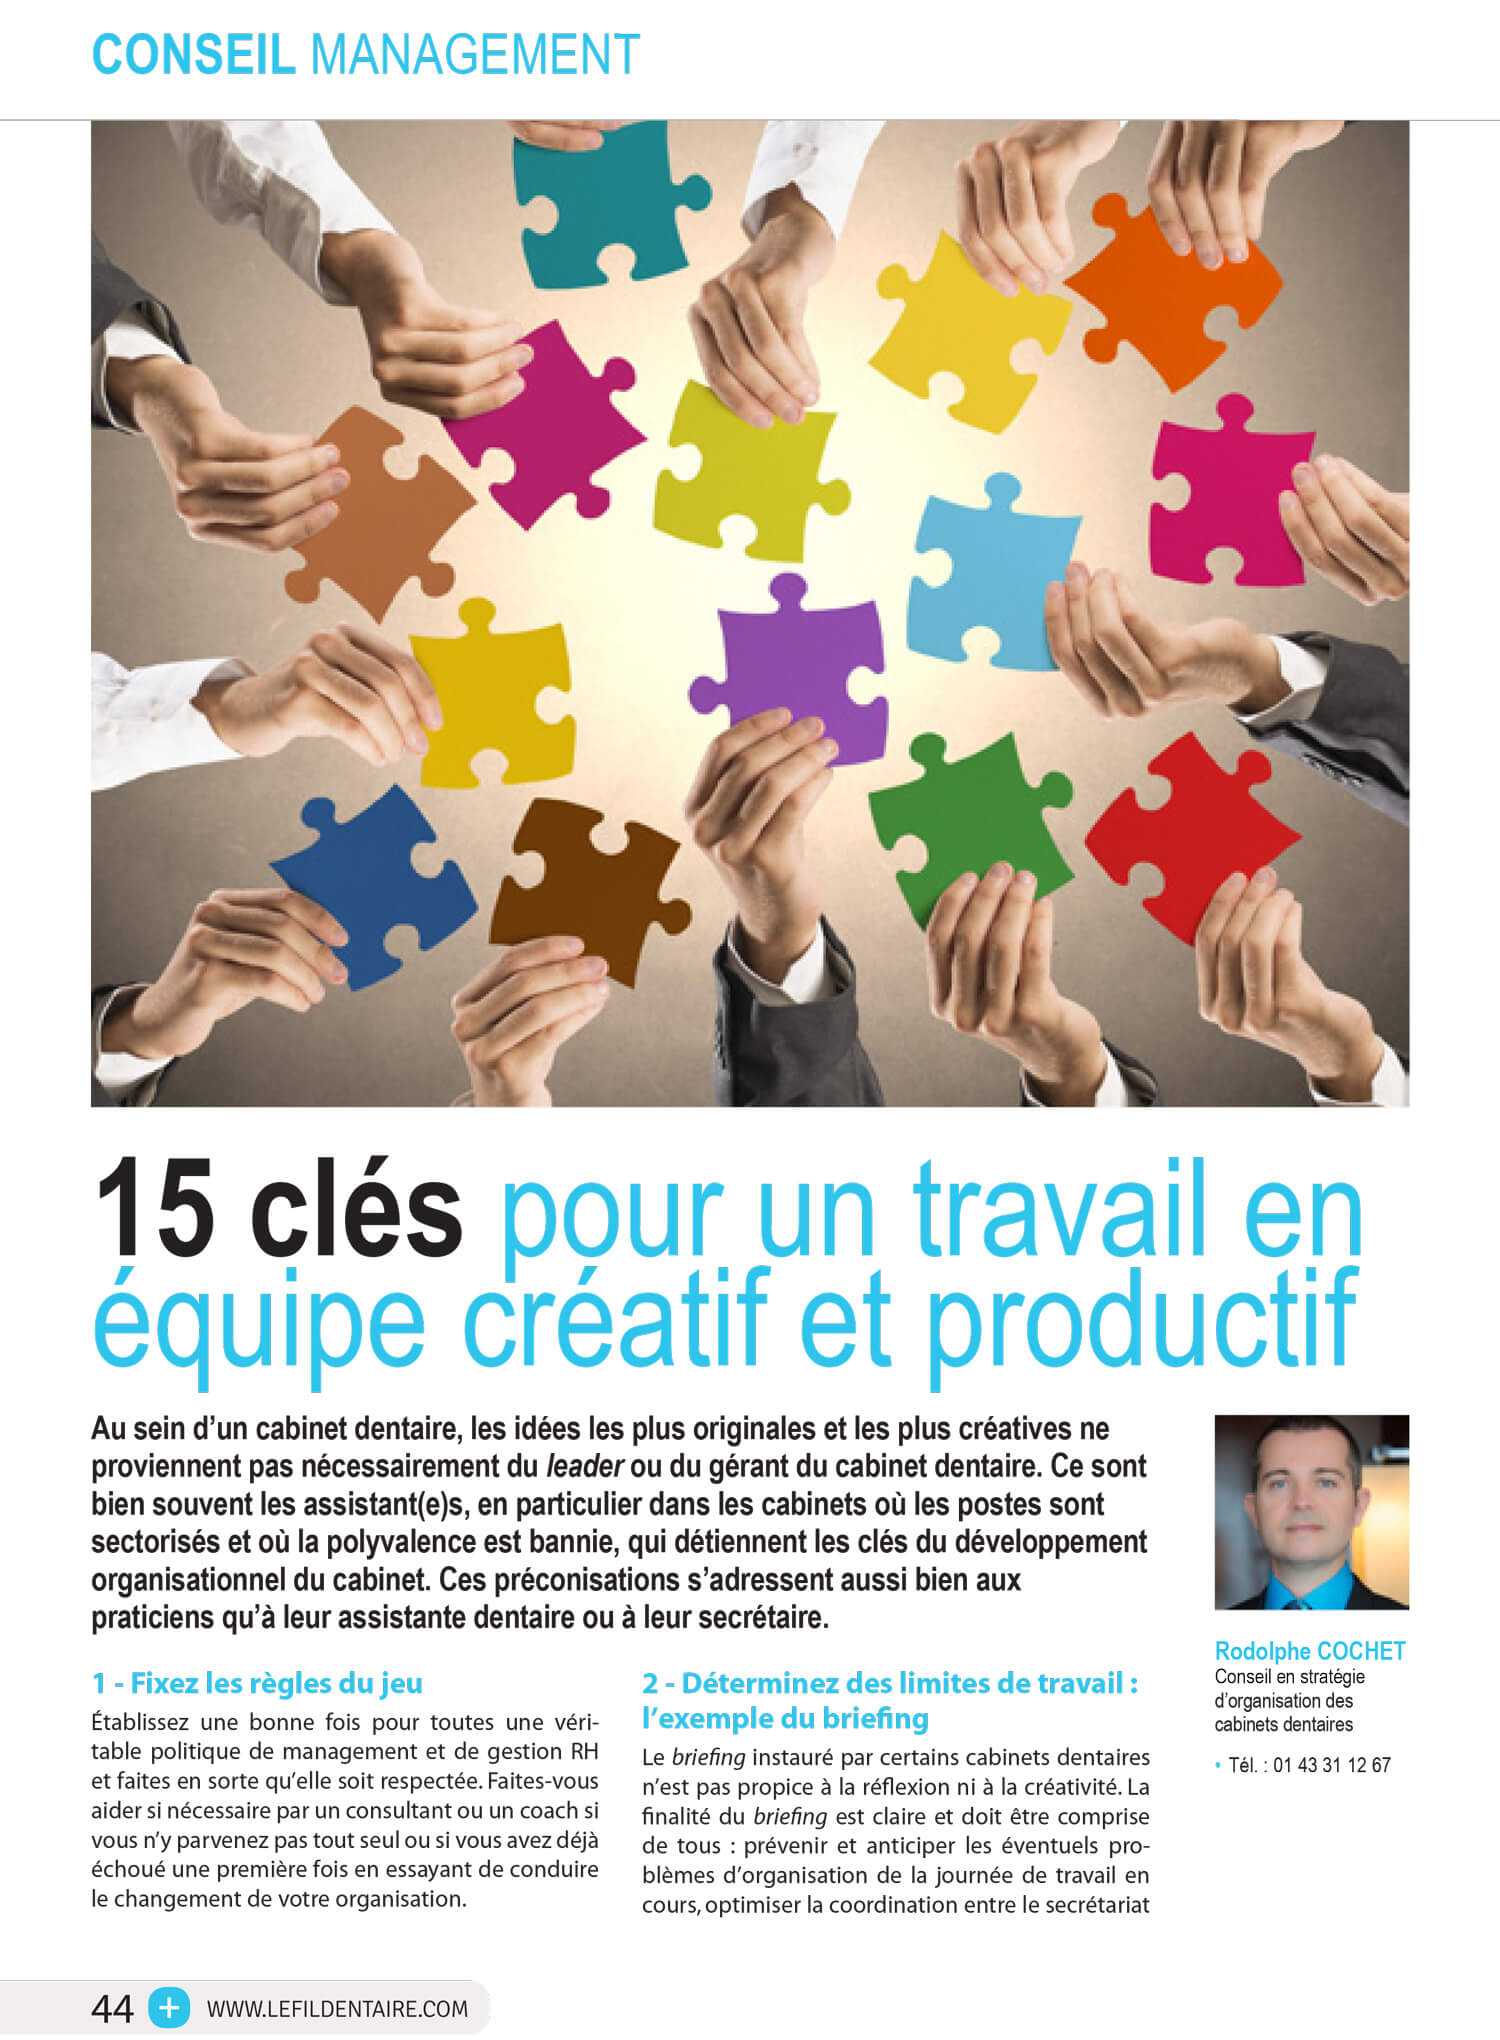 cles-solutions-travail-equipe-cabinet-dentaire-management-assistante-Rodolphe-Cochet.jpg